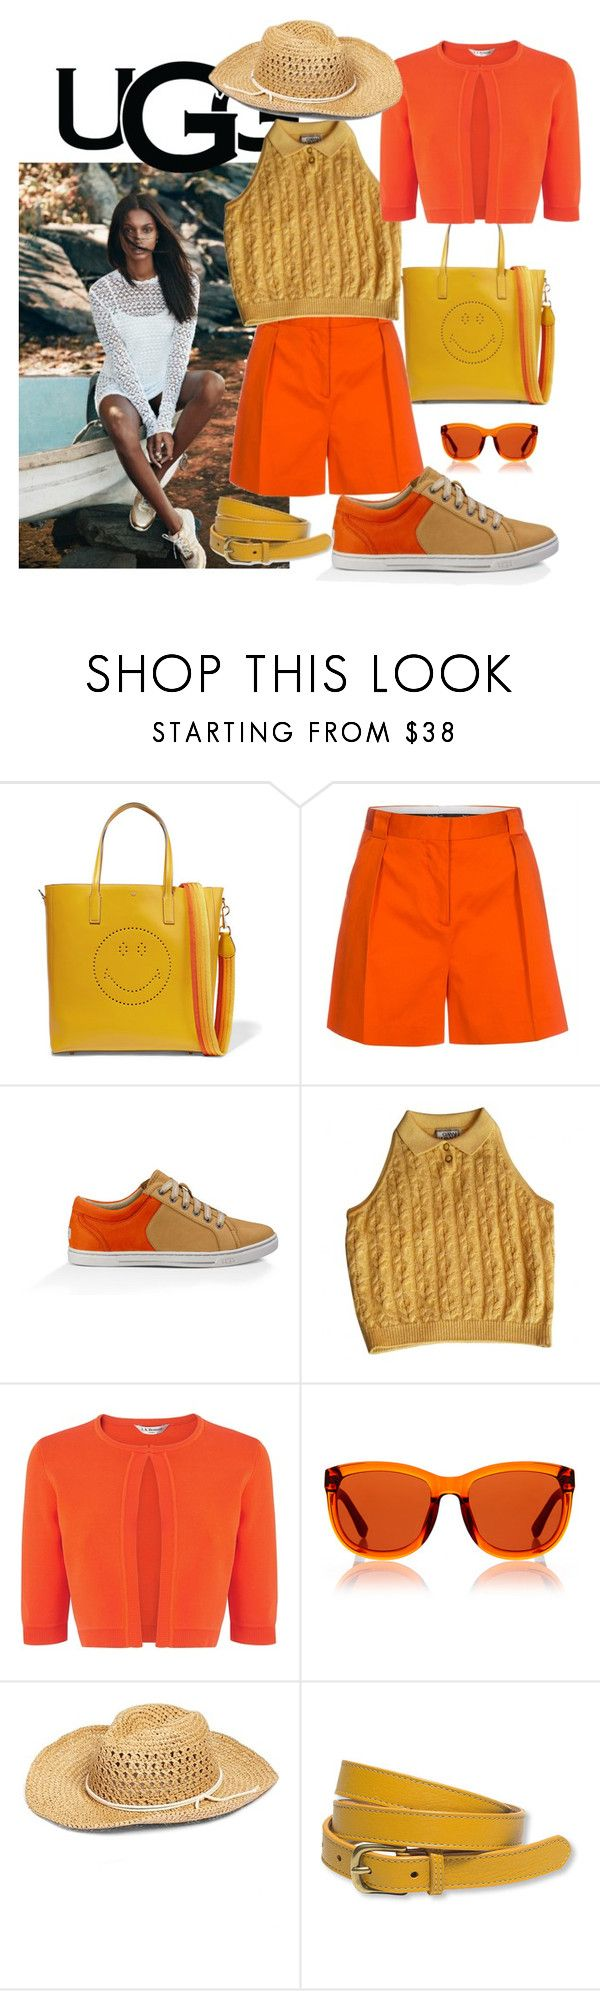 """""""Play With Prints In UGG: Contest Entry"""" by manueladimauro ❤ liked on Polyvore featuring UGG Australia, Anya Hindmarch, Paul Smith, UGG, Versace, L.K.Bennett, The Row, Hinge, L.L.Bean and thisisugg"""